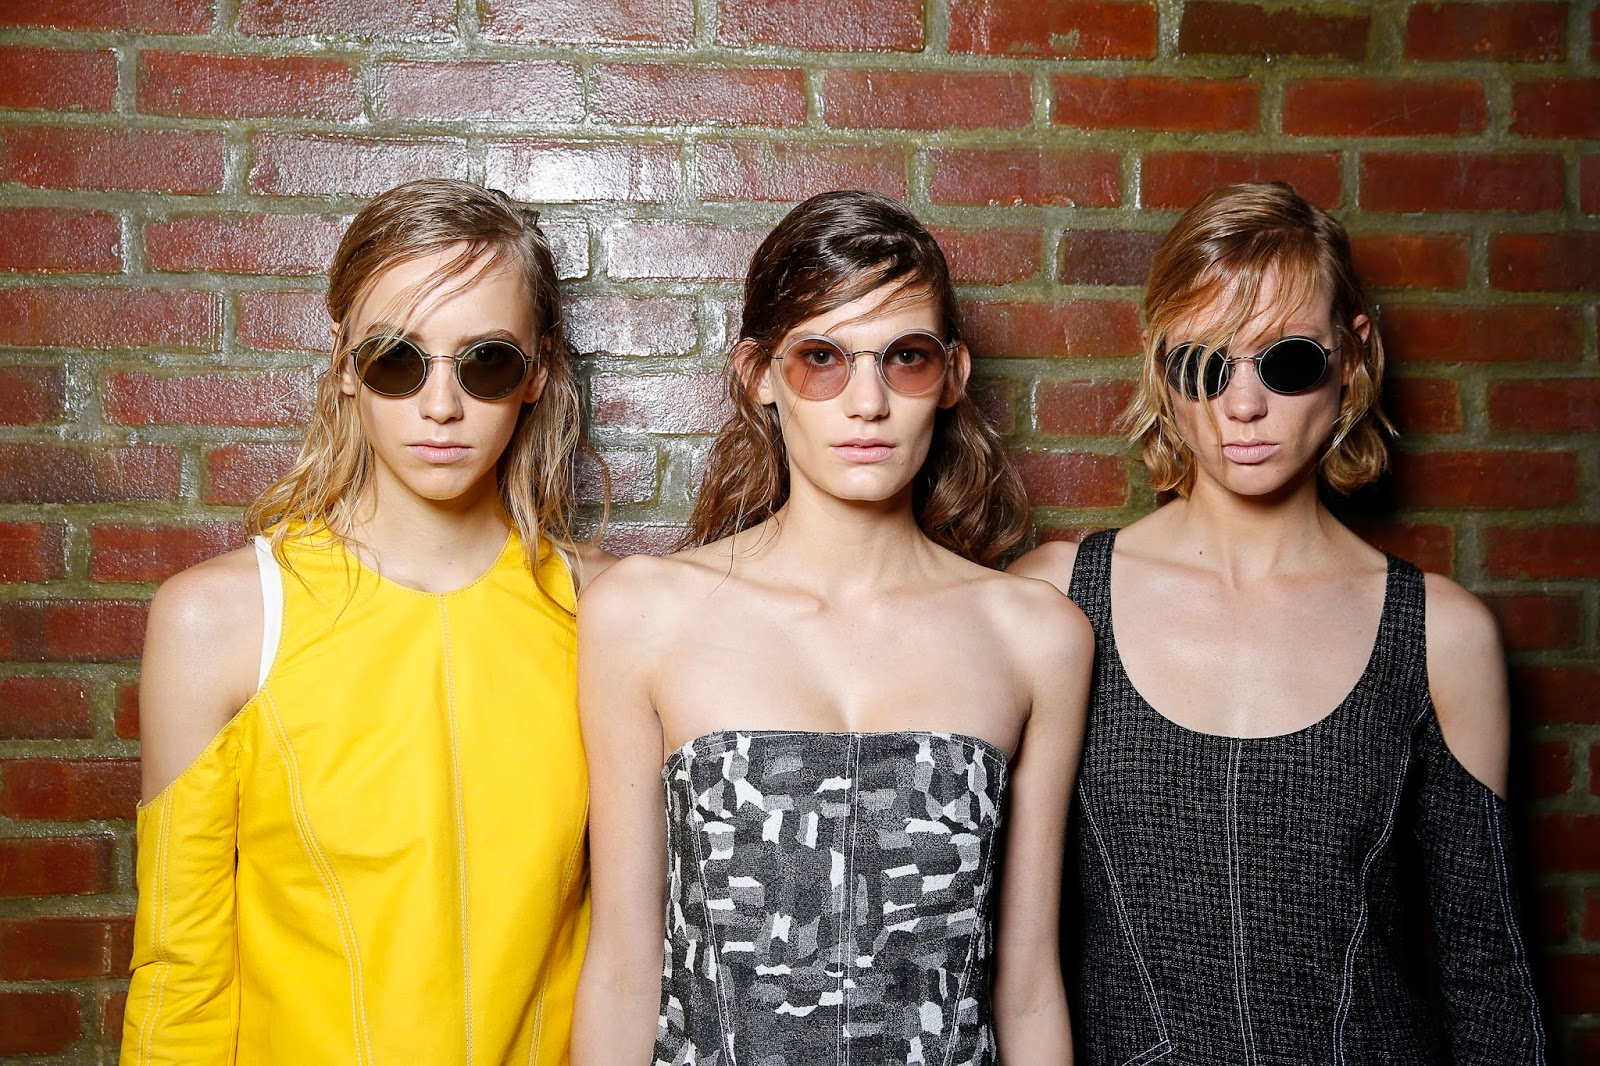 d478a02006e Kicking of NYFW this season were the SERIOULY CHIC sunglasses collaboration  from luxury label Silhouette x Wes Gordon  SS16. With the designer s  simple